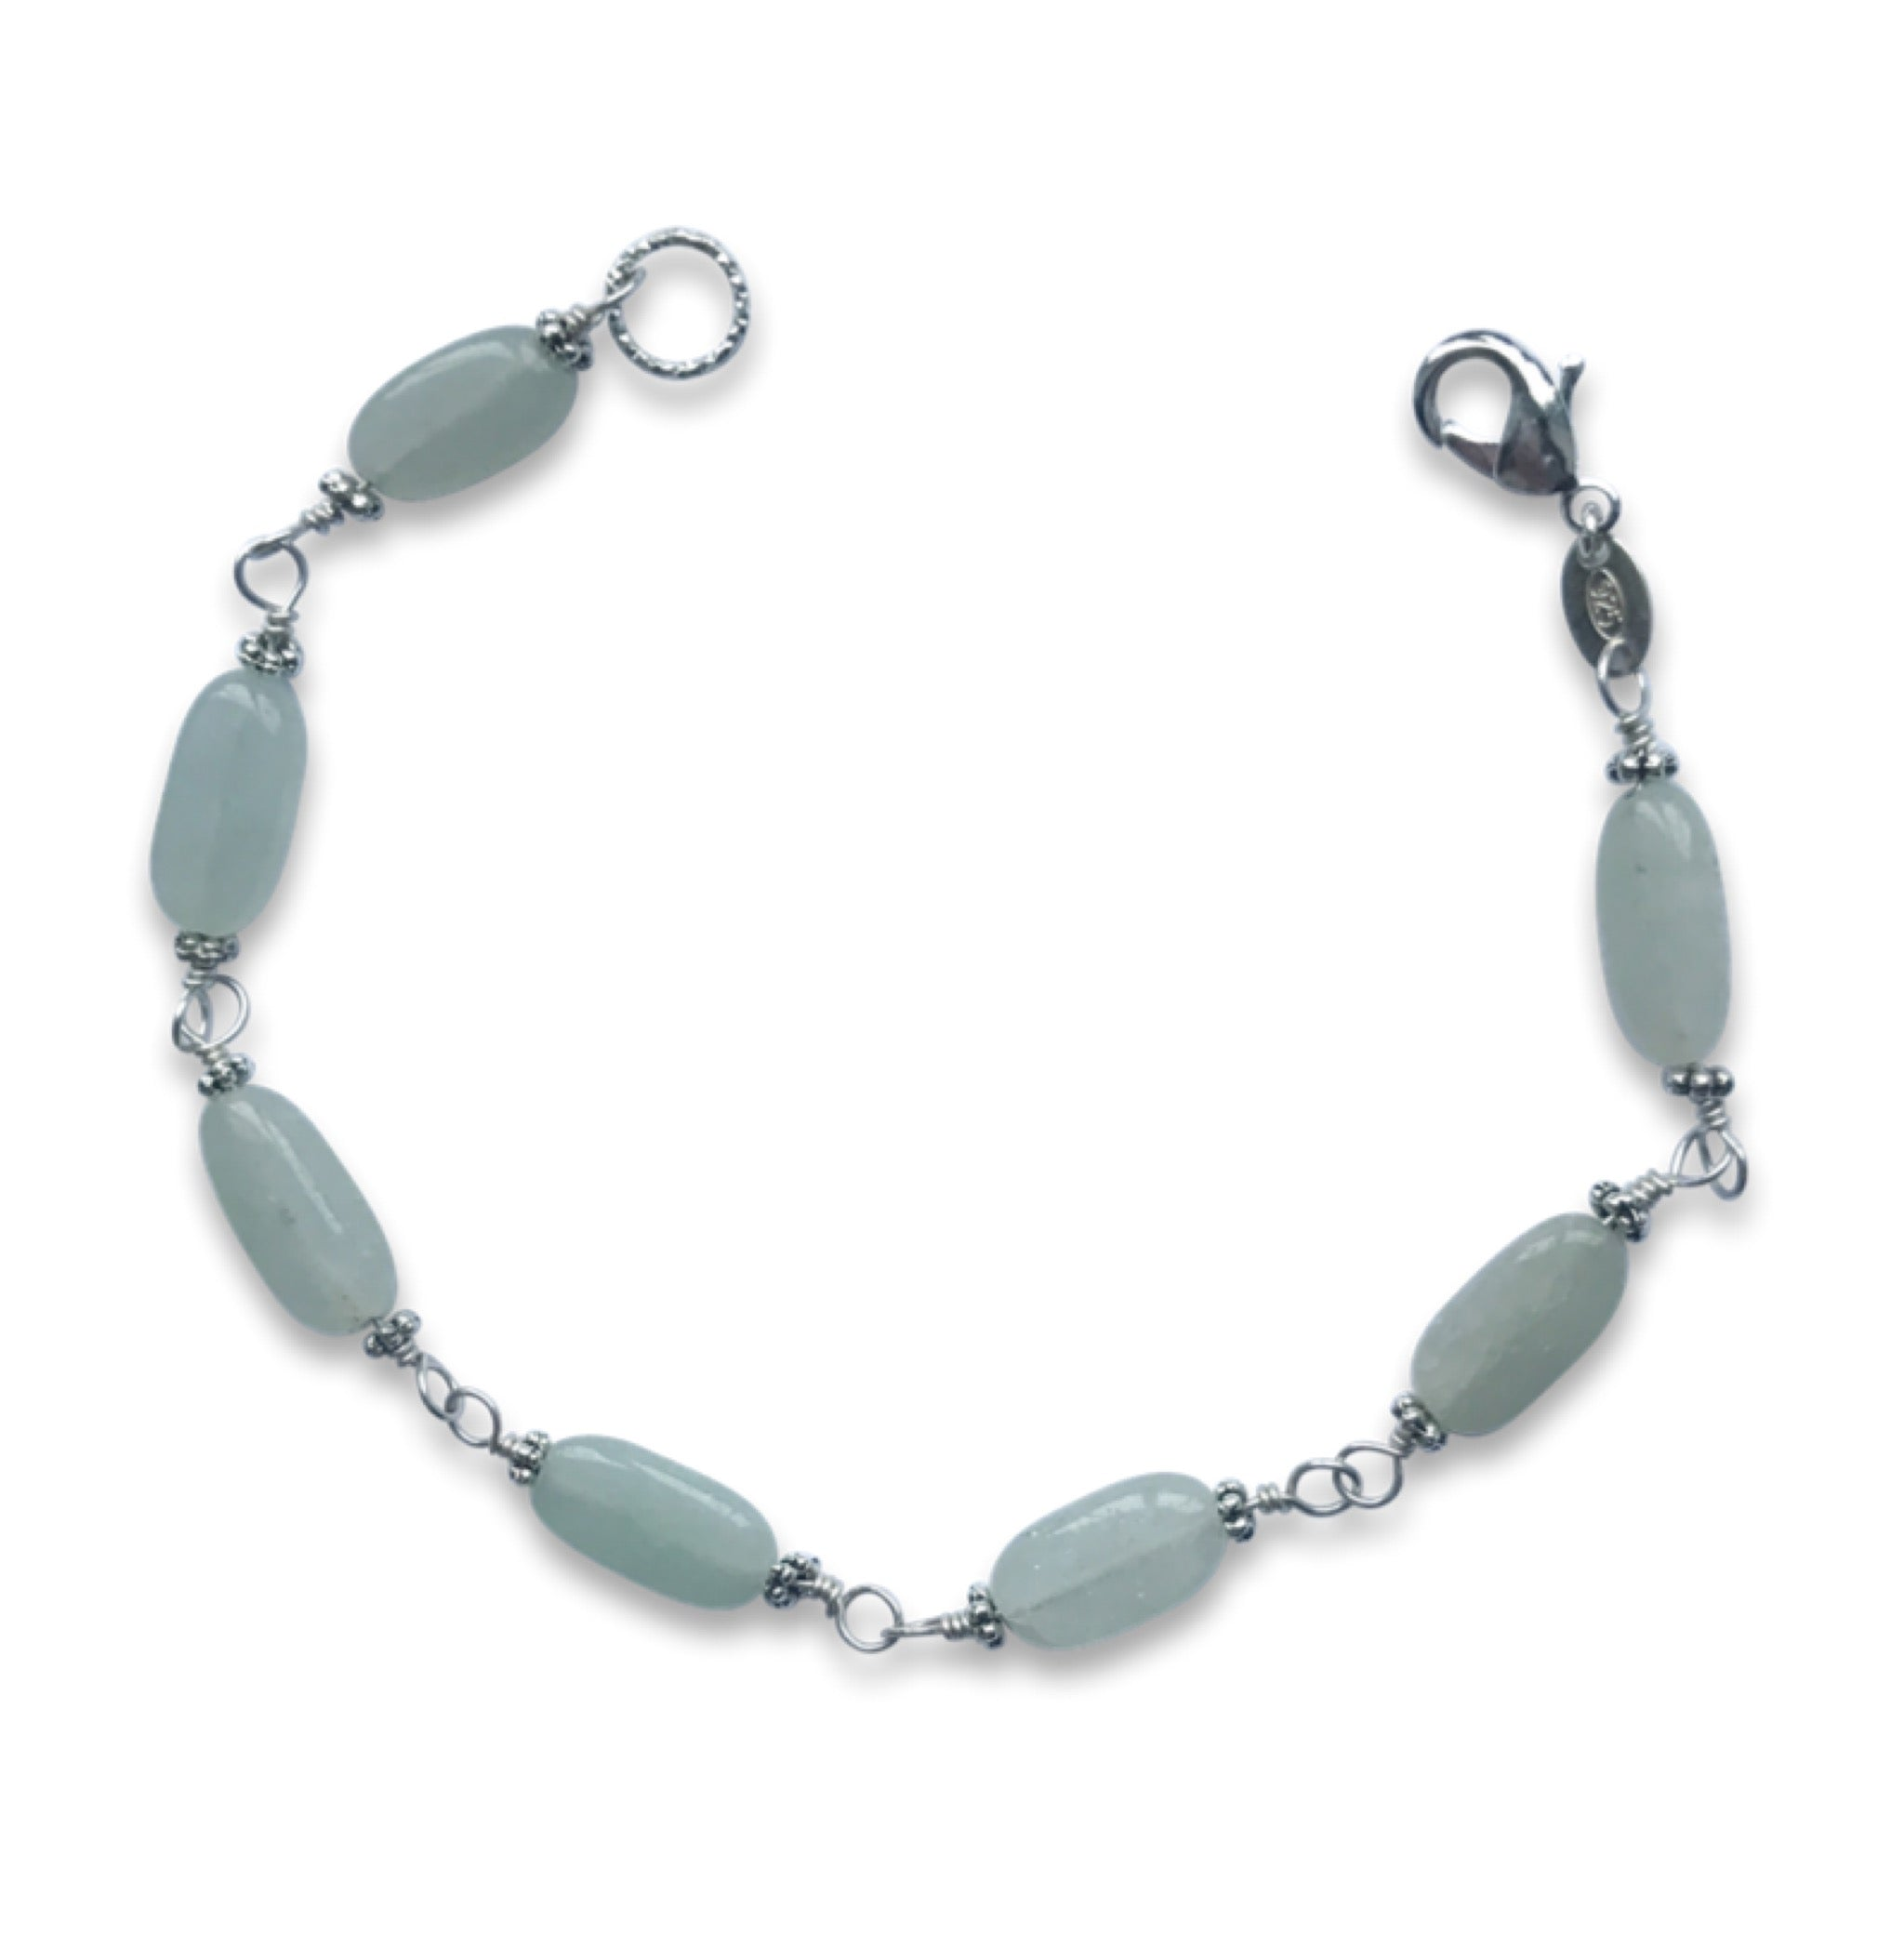 Christmas Gifts for Her - Handmade Aventurine - Swanky Collection